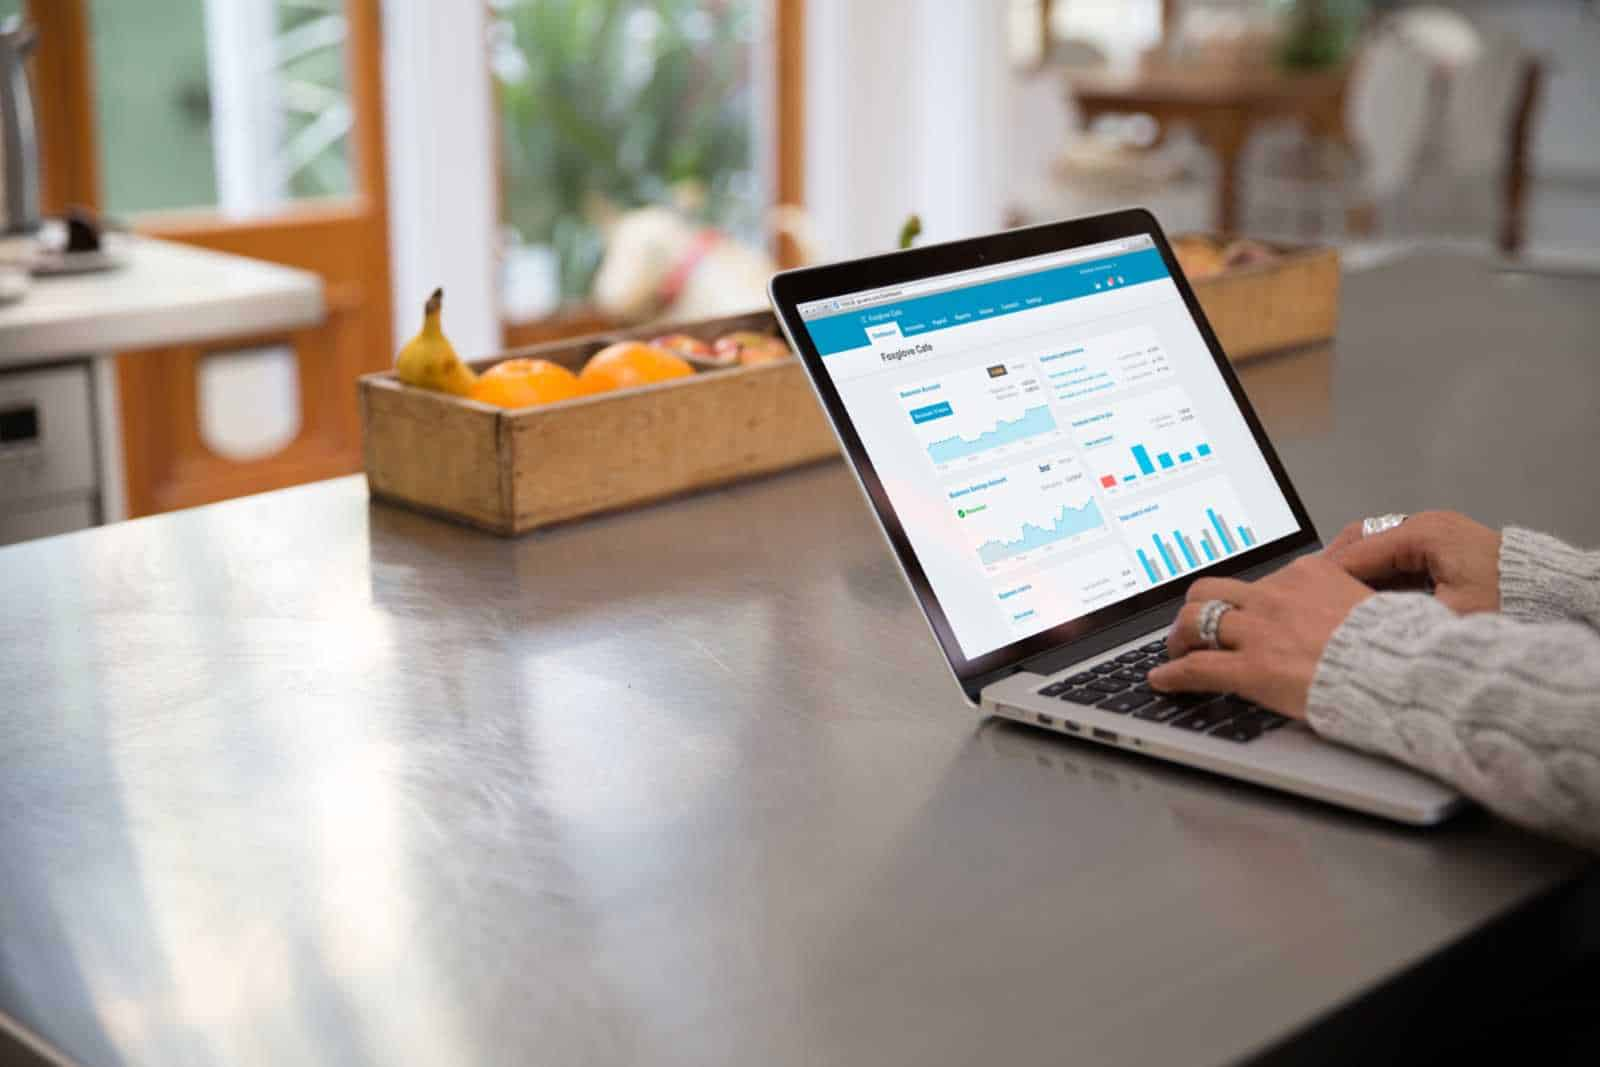 Xero Cloud Accounting & Bookkeeping Software on an Apple Macbook